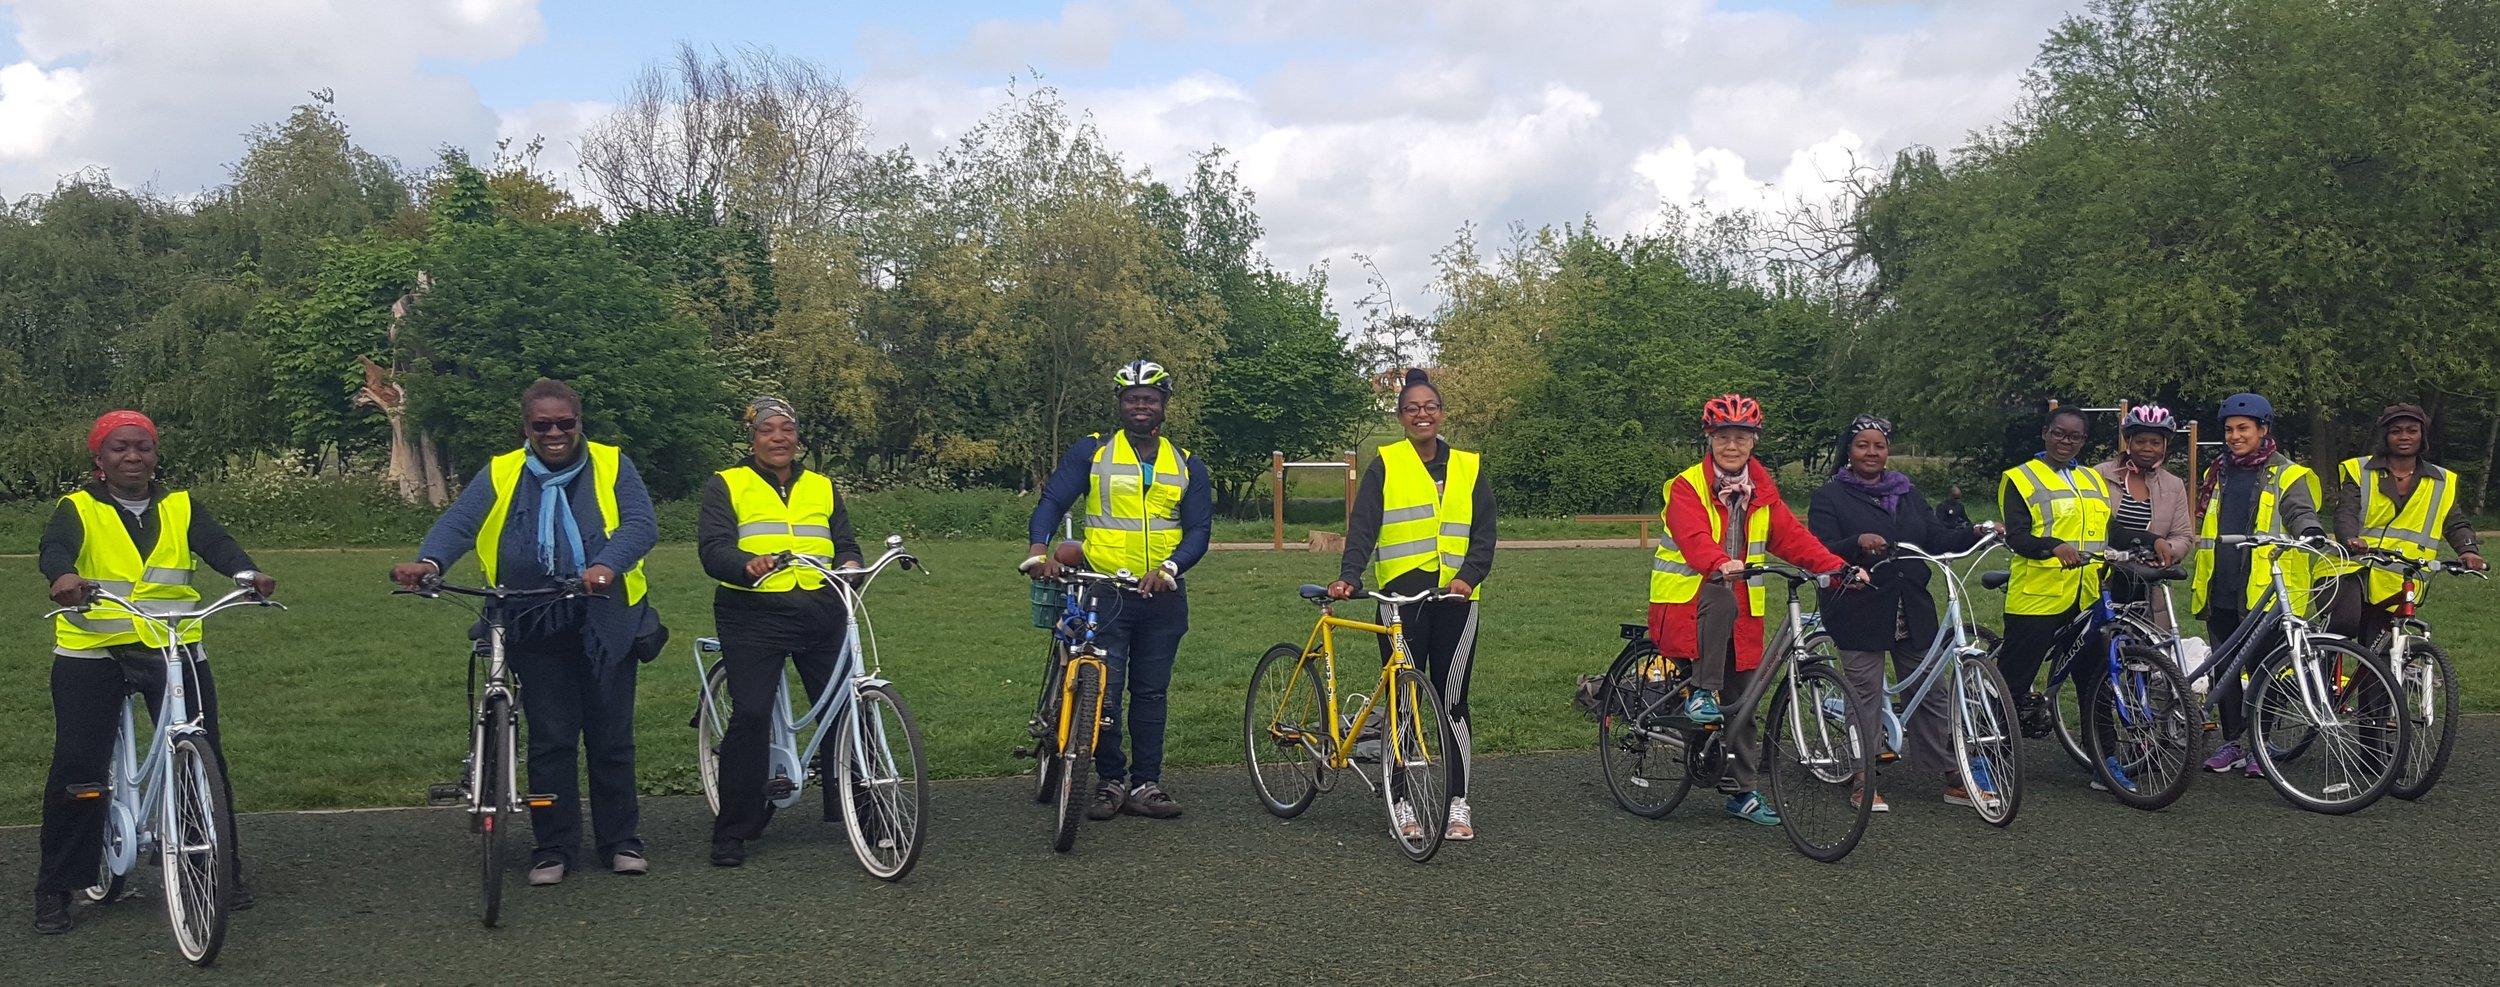 Wise Women on Wheels (Incubation project)  Wise Women on Wheels was our exciting incubation project in collaboration with Rockstone Community Foundation. It supported Black and Minority Ethnic (BME) women over the age of 45 in developing cycling proficiency.